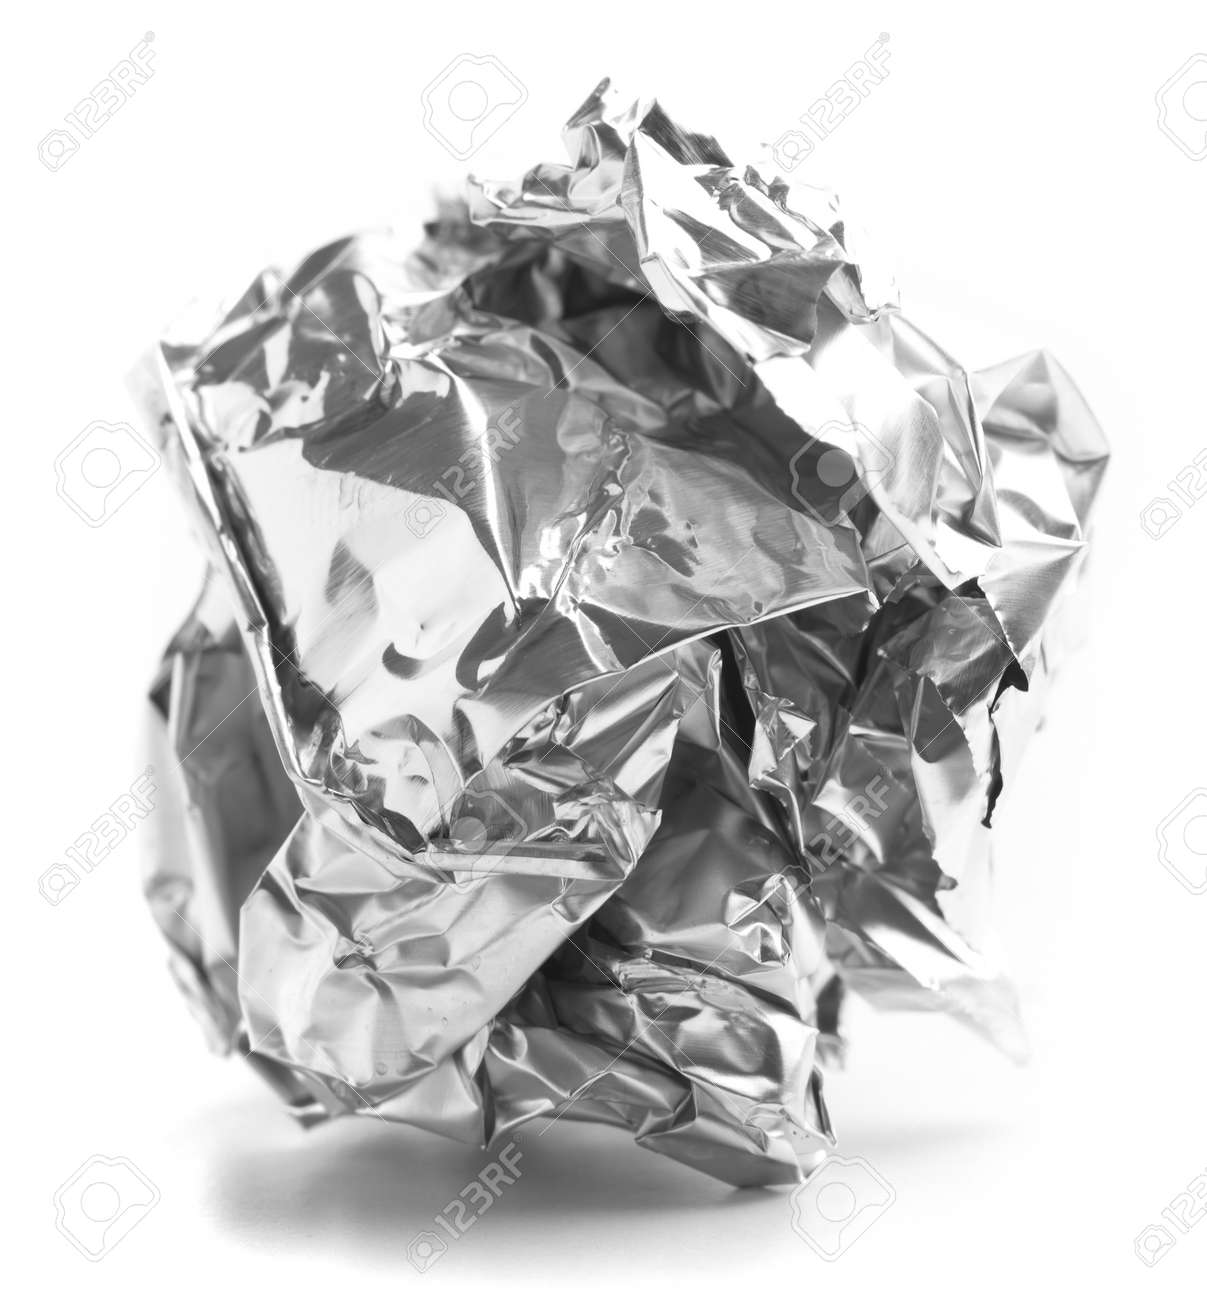 aluminum paper ball isolated on a white background Stock Photo - 8326555